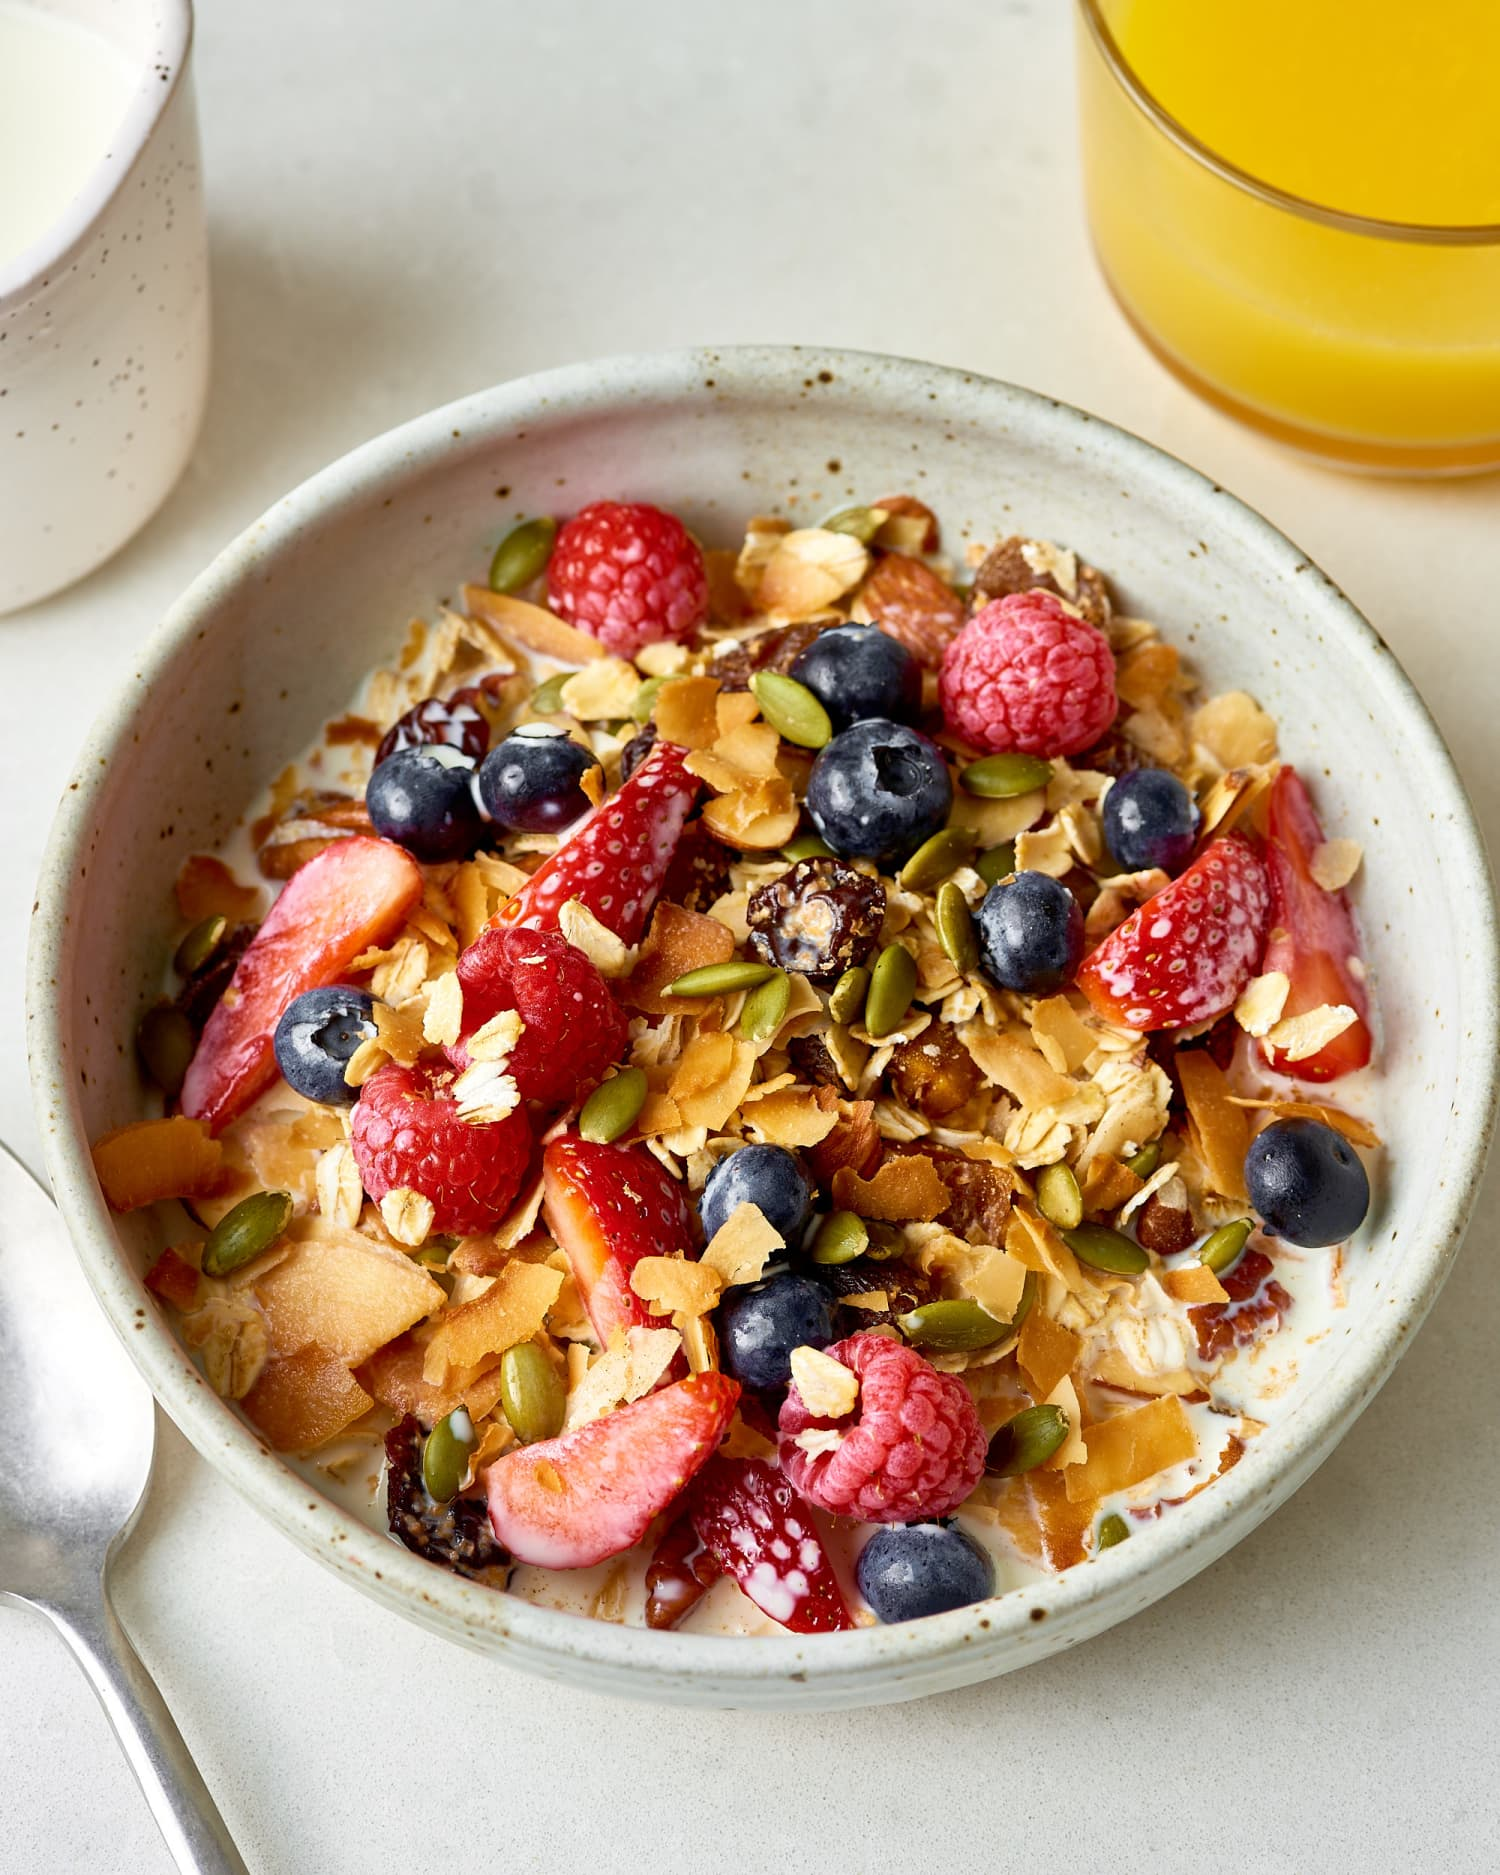 60+ Easy Breakfast Ideas to Fuel Your Day